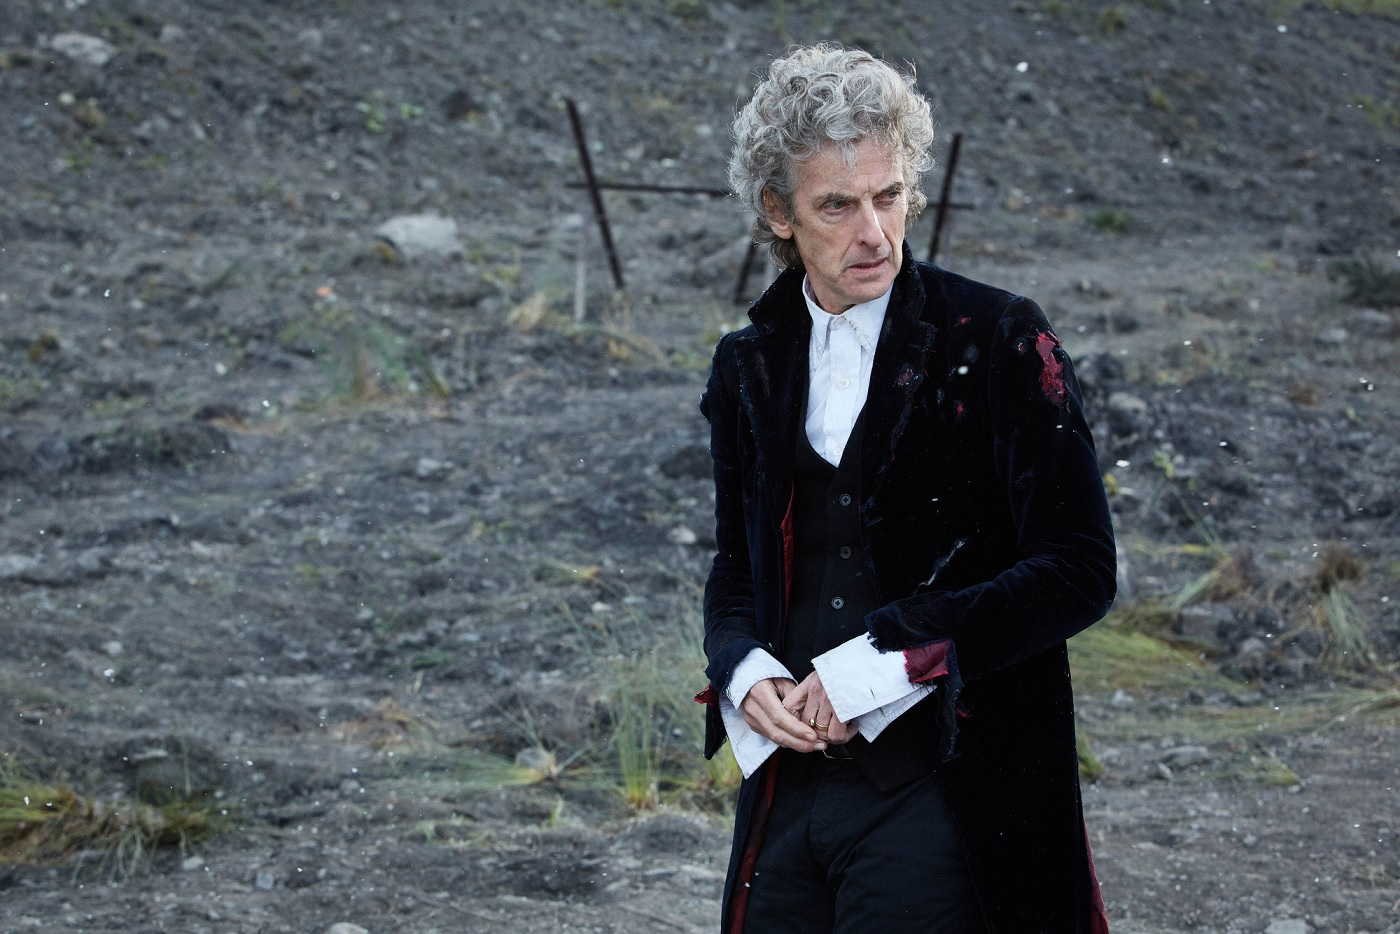 Doctor Who Christmas Special.Doctor Who Christmas Special Twice Upon A Time As Buddhist